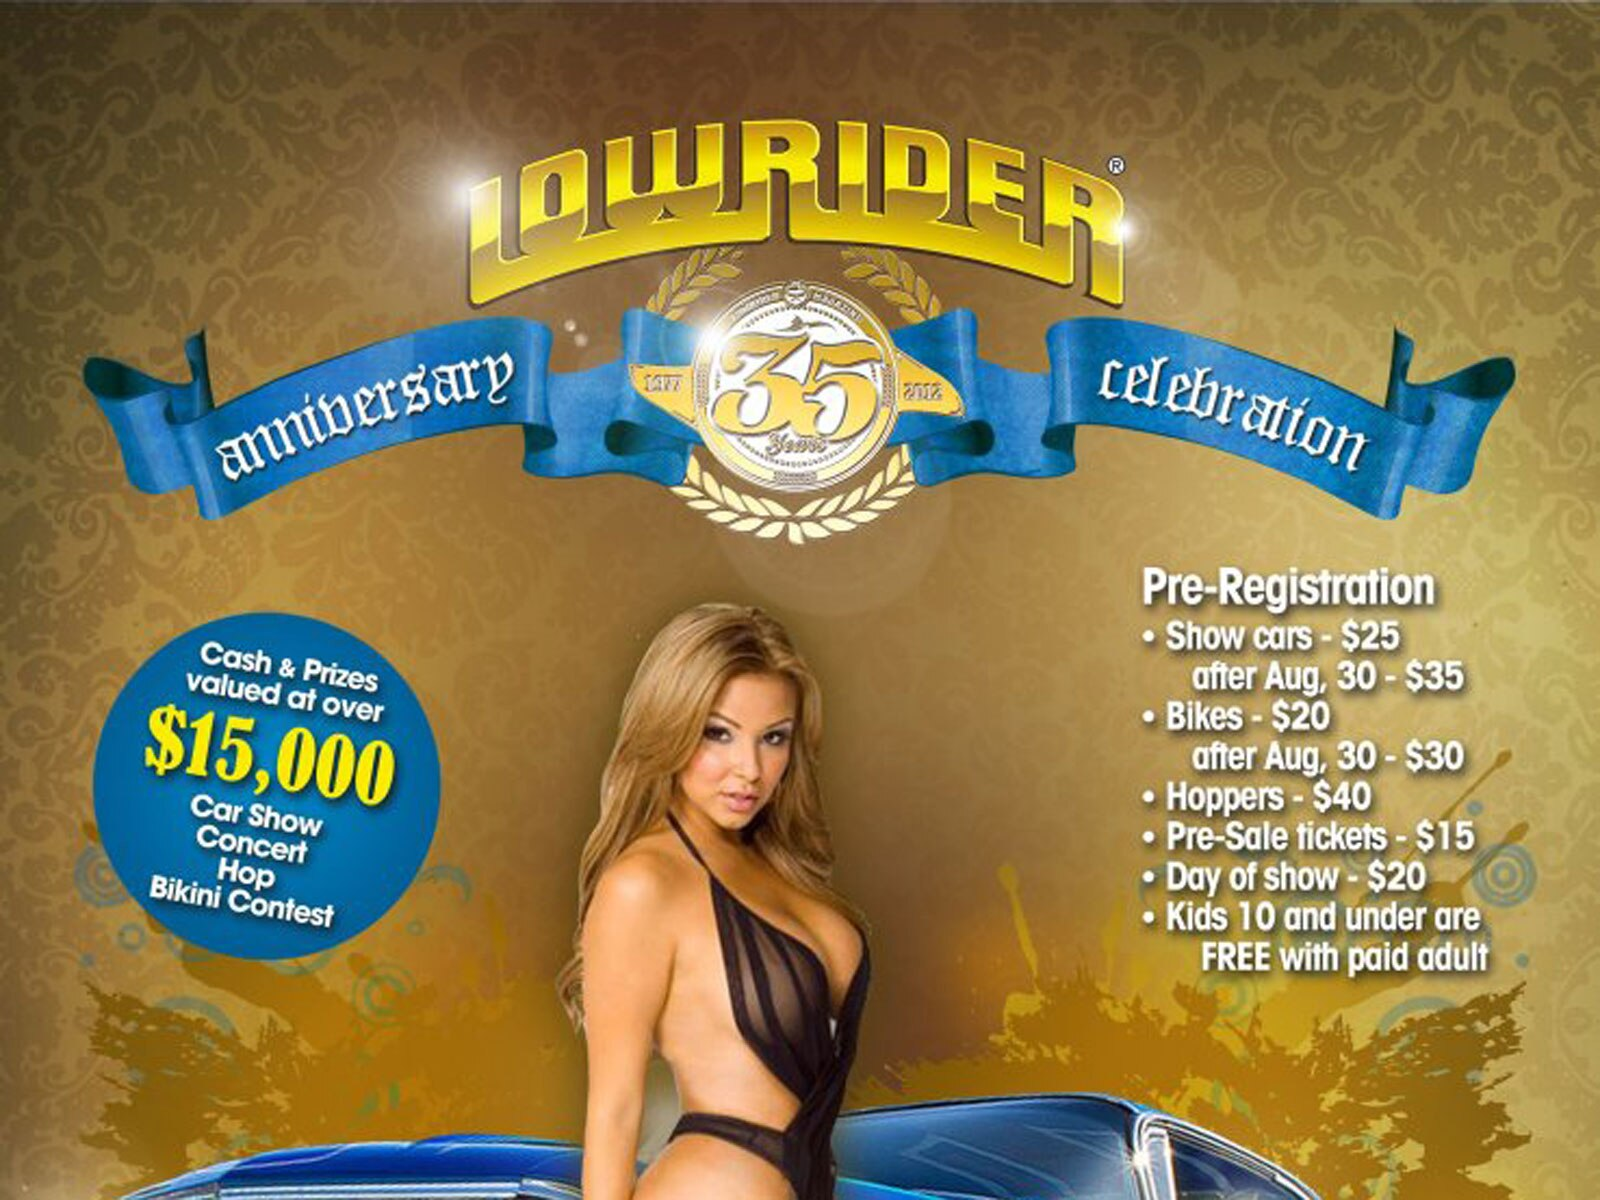 1208-lrmp-01-hp-LQ-presents-lowrider-band-northern-cali-super-show-event-flyer